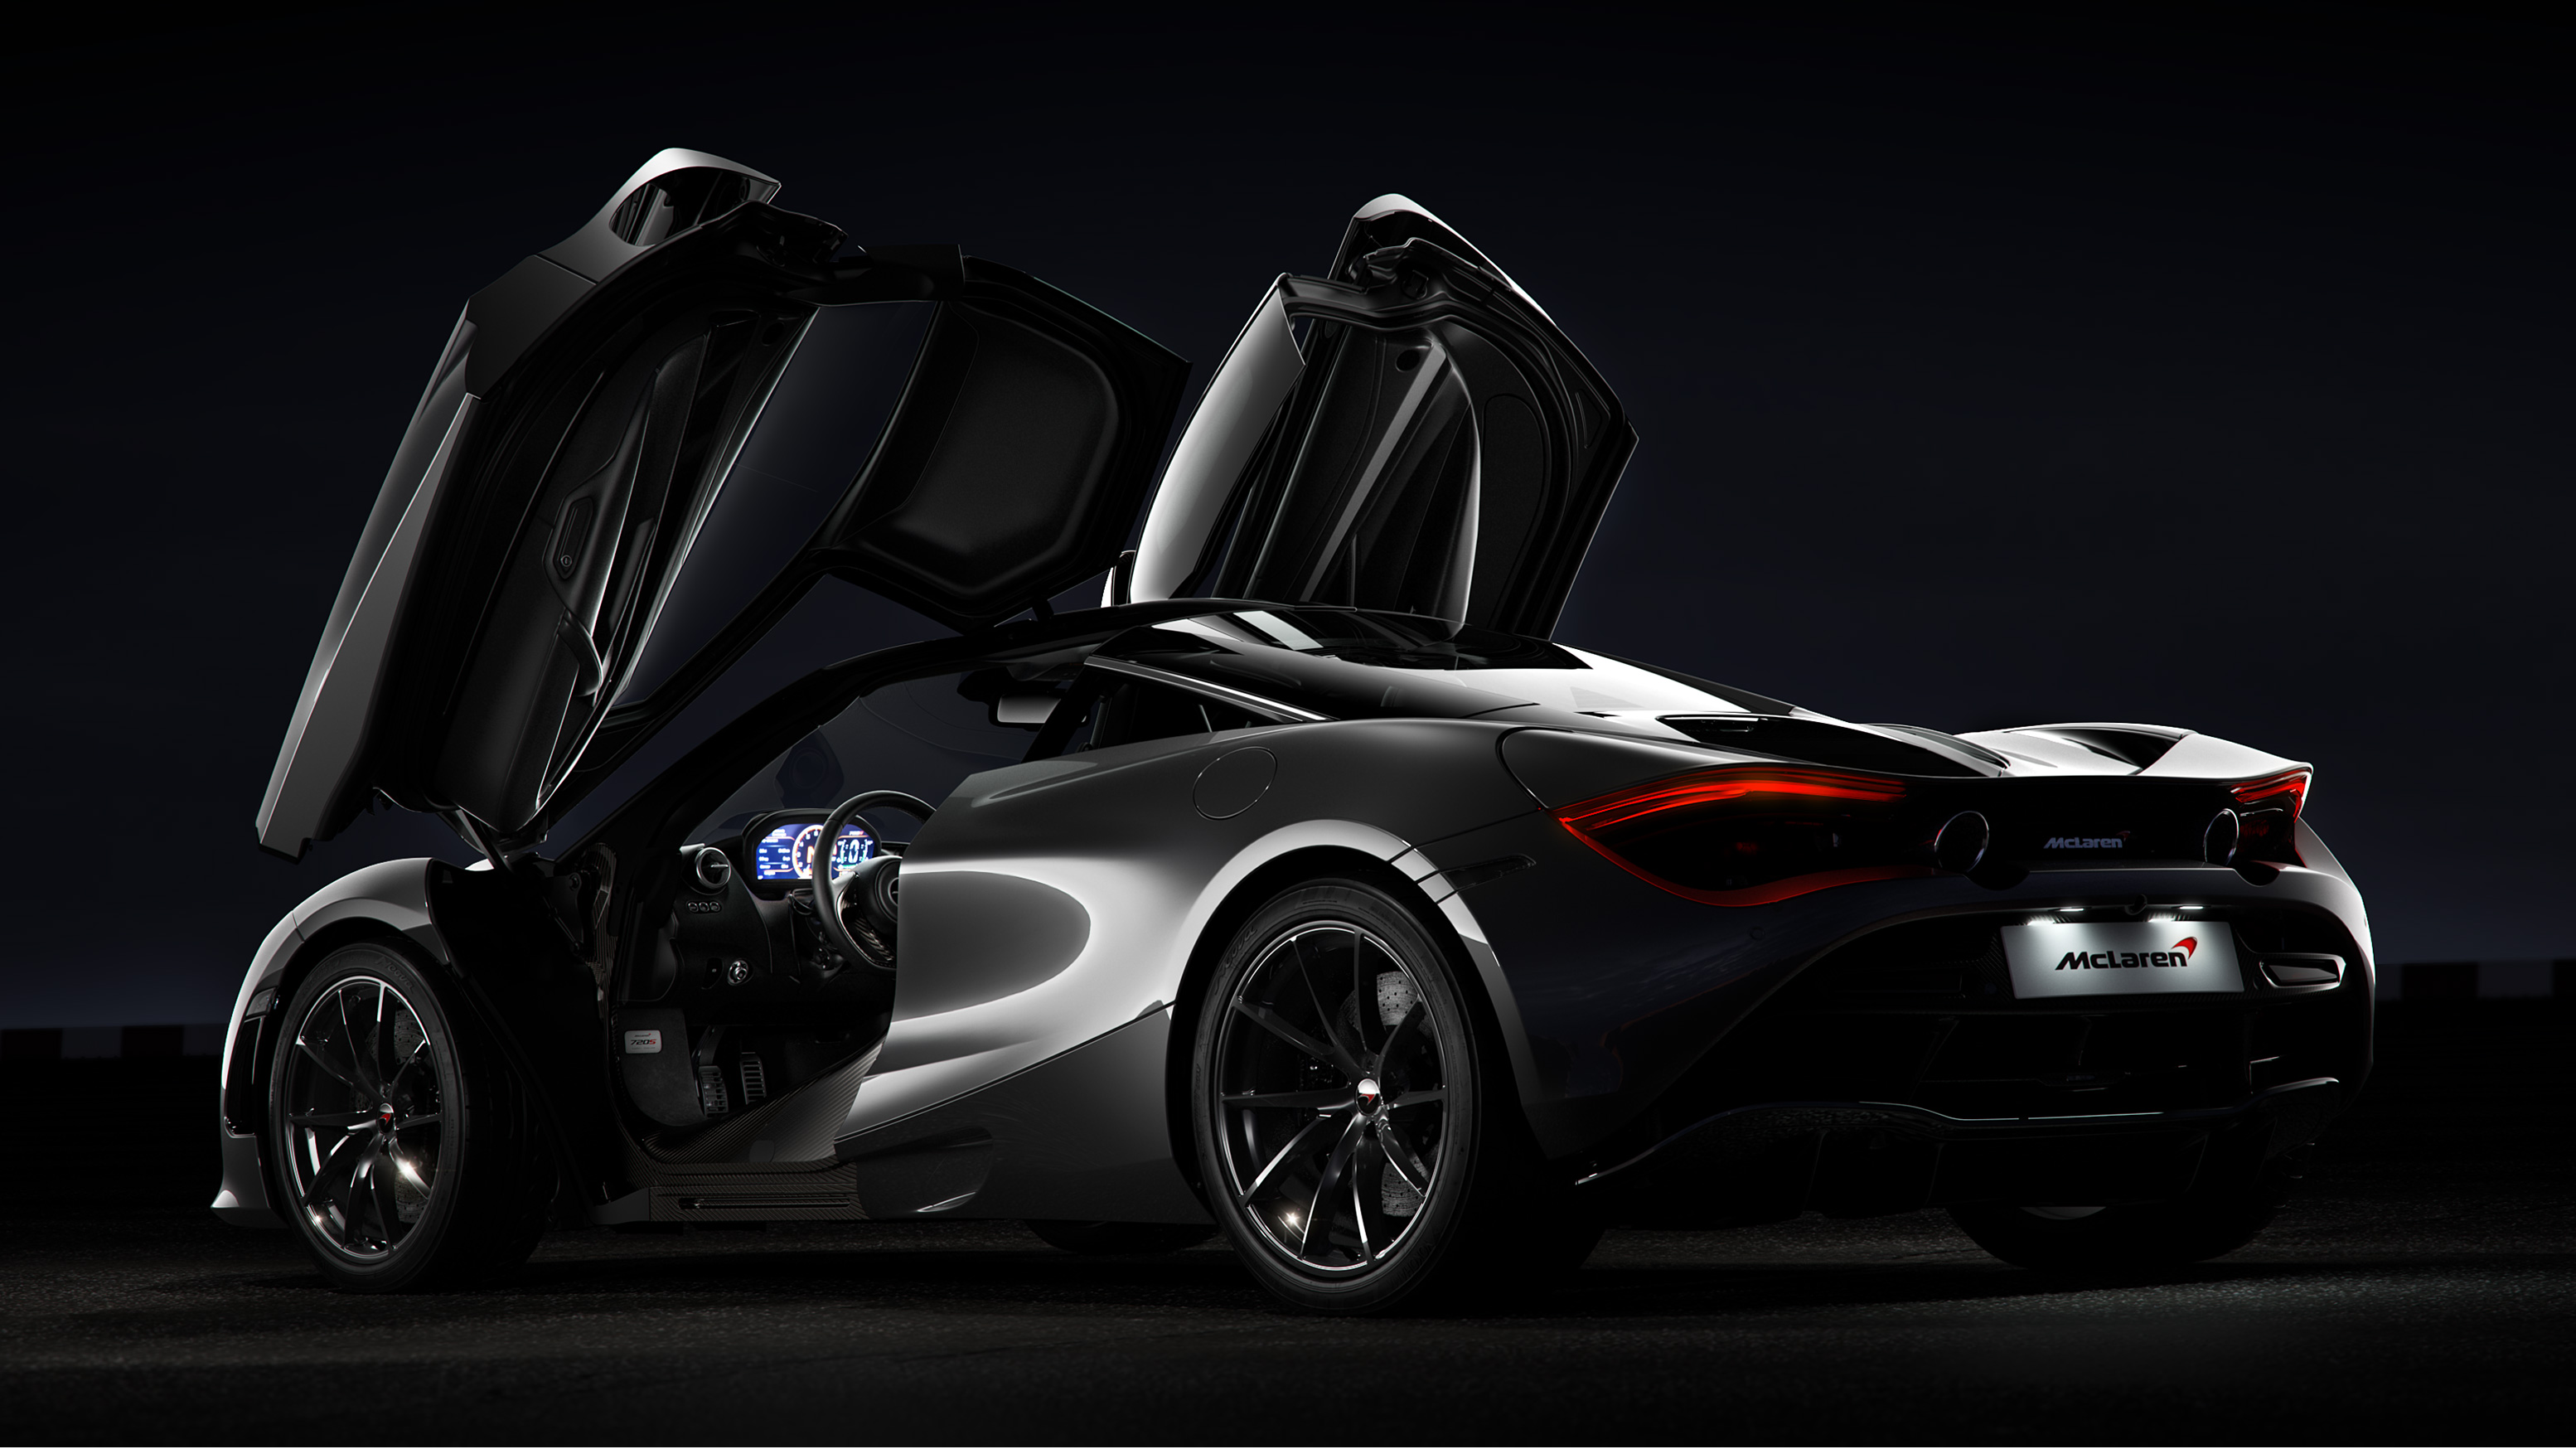 Mclaren 720s Doors Up Hd Cars 4k Wallpapers Images Backgrounds Photos And Pictures